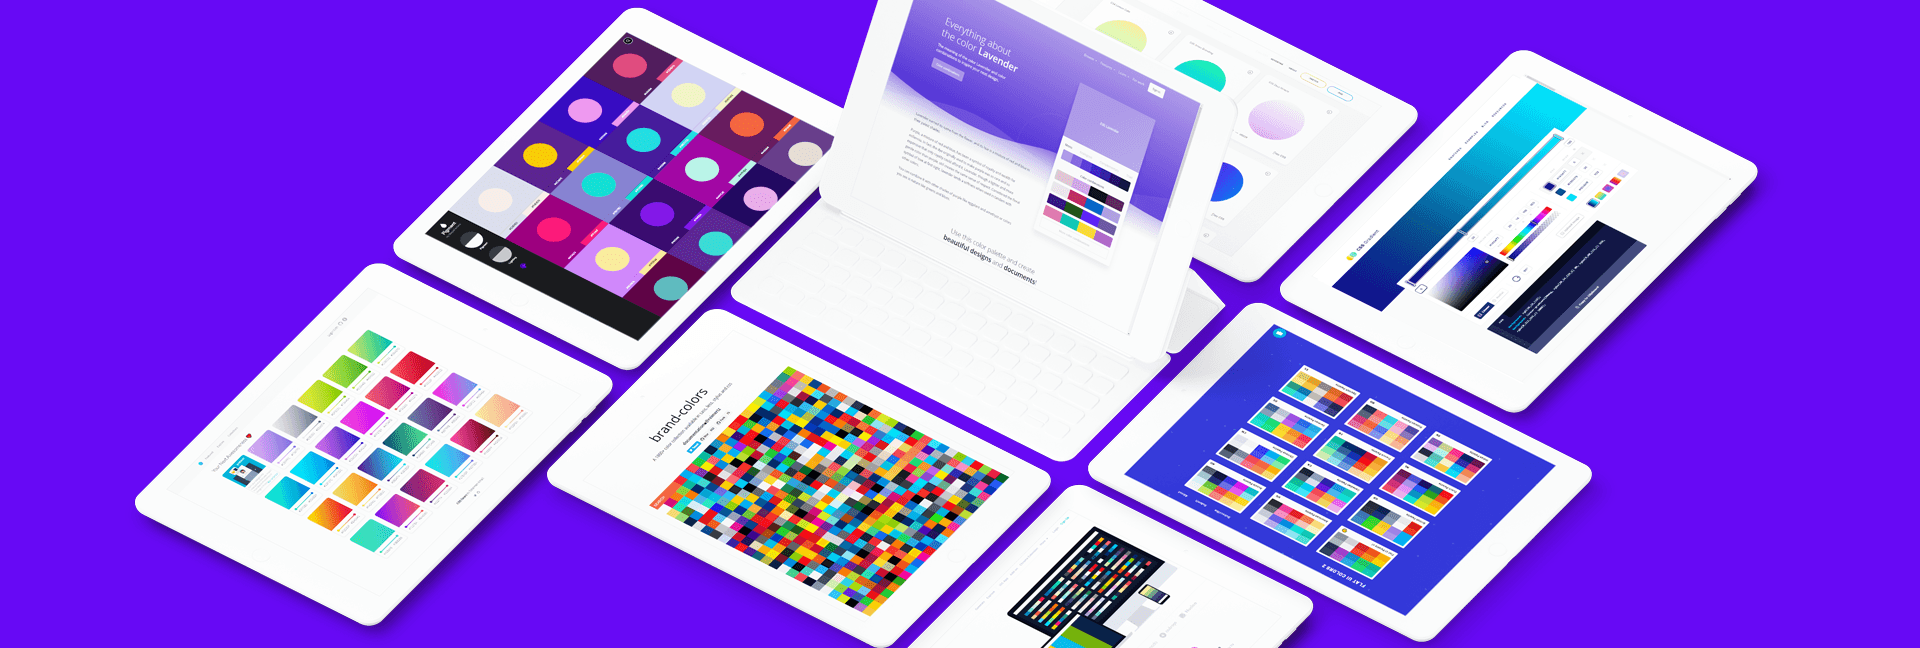 12 color-related apps and tools you'll want to bookmark immediately